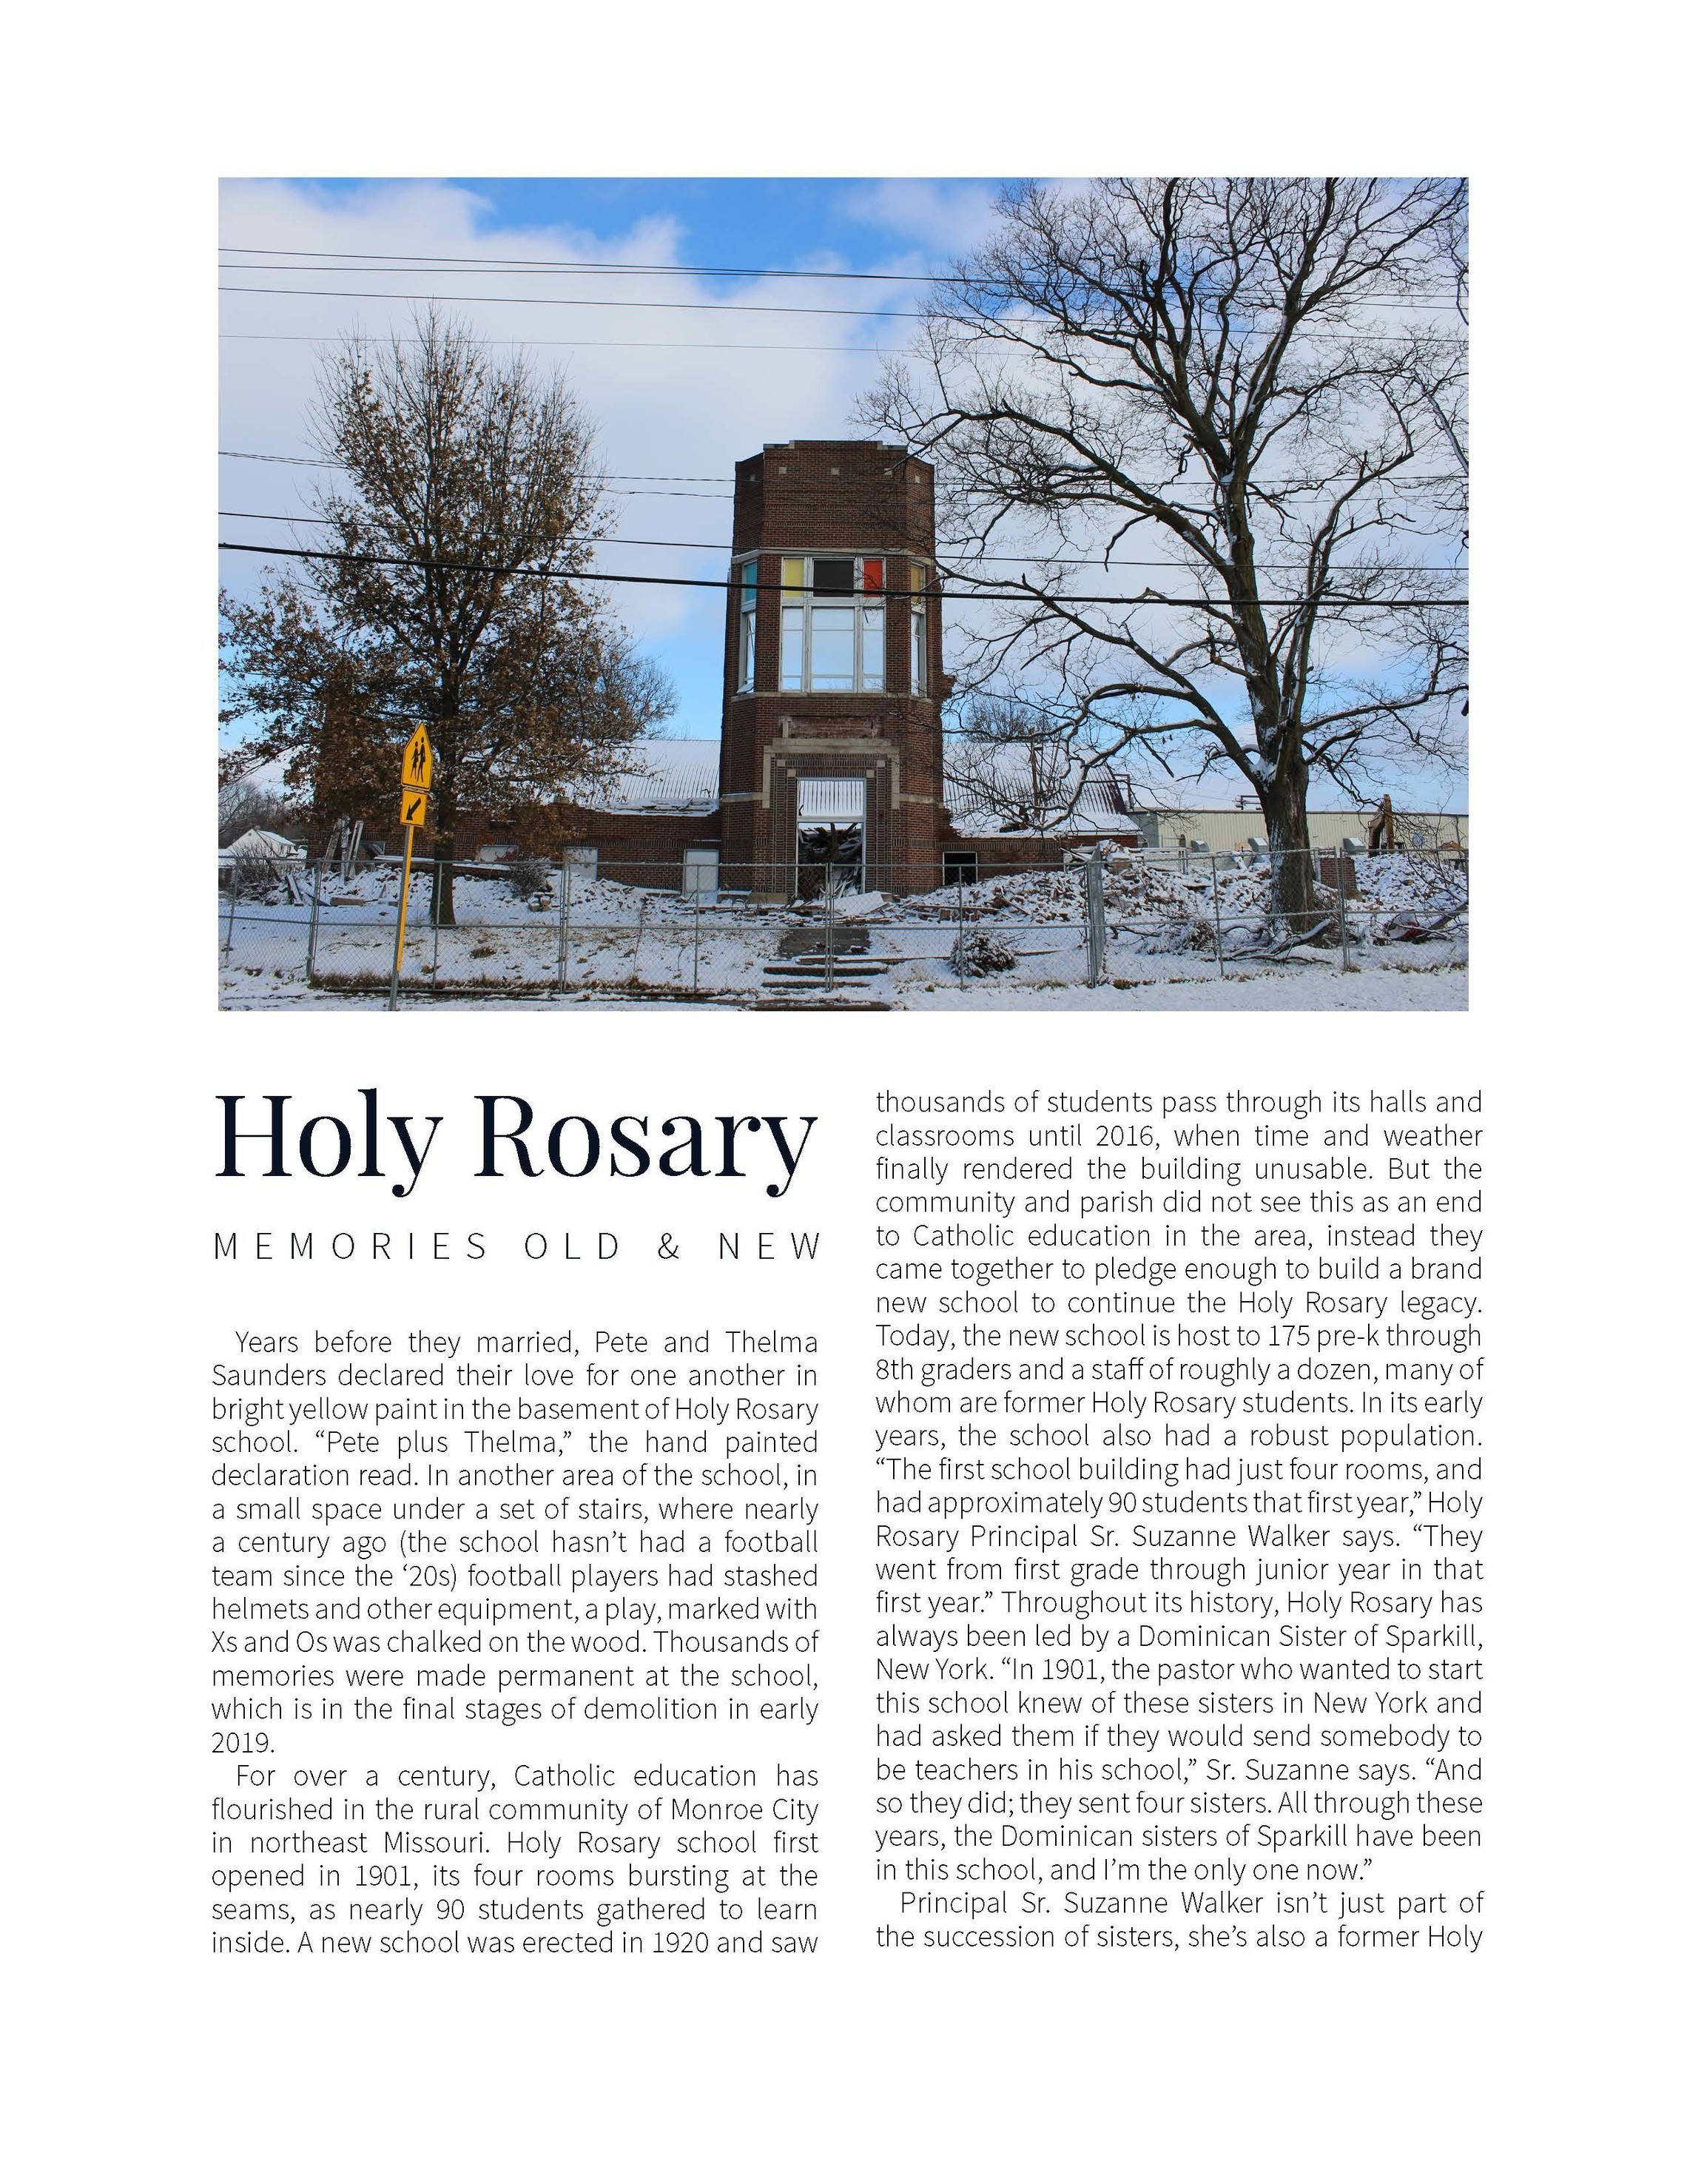 Holy Rosary Online